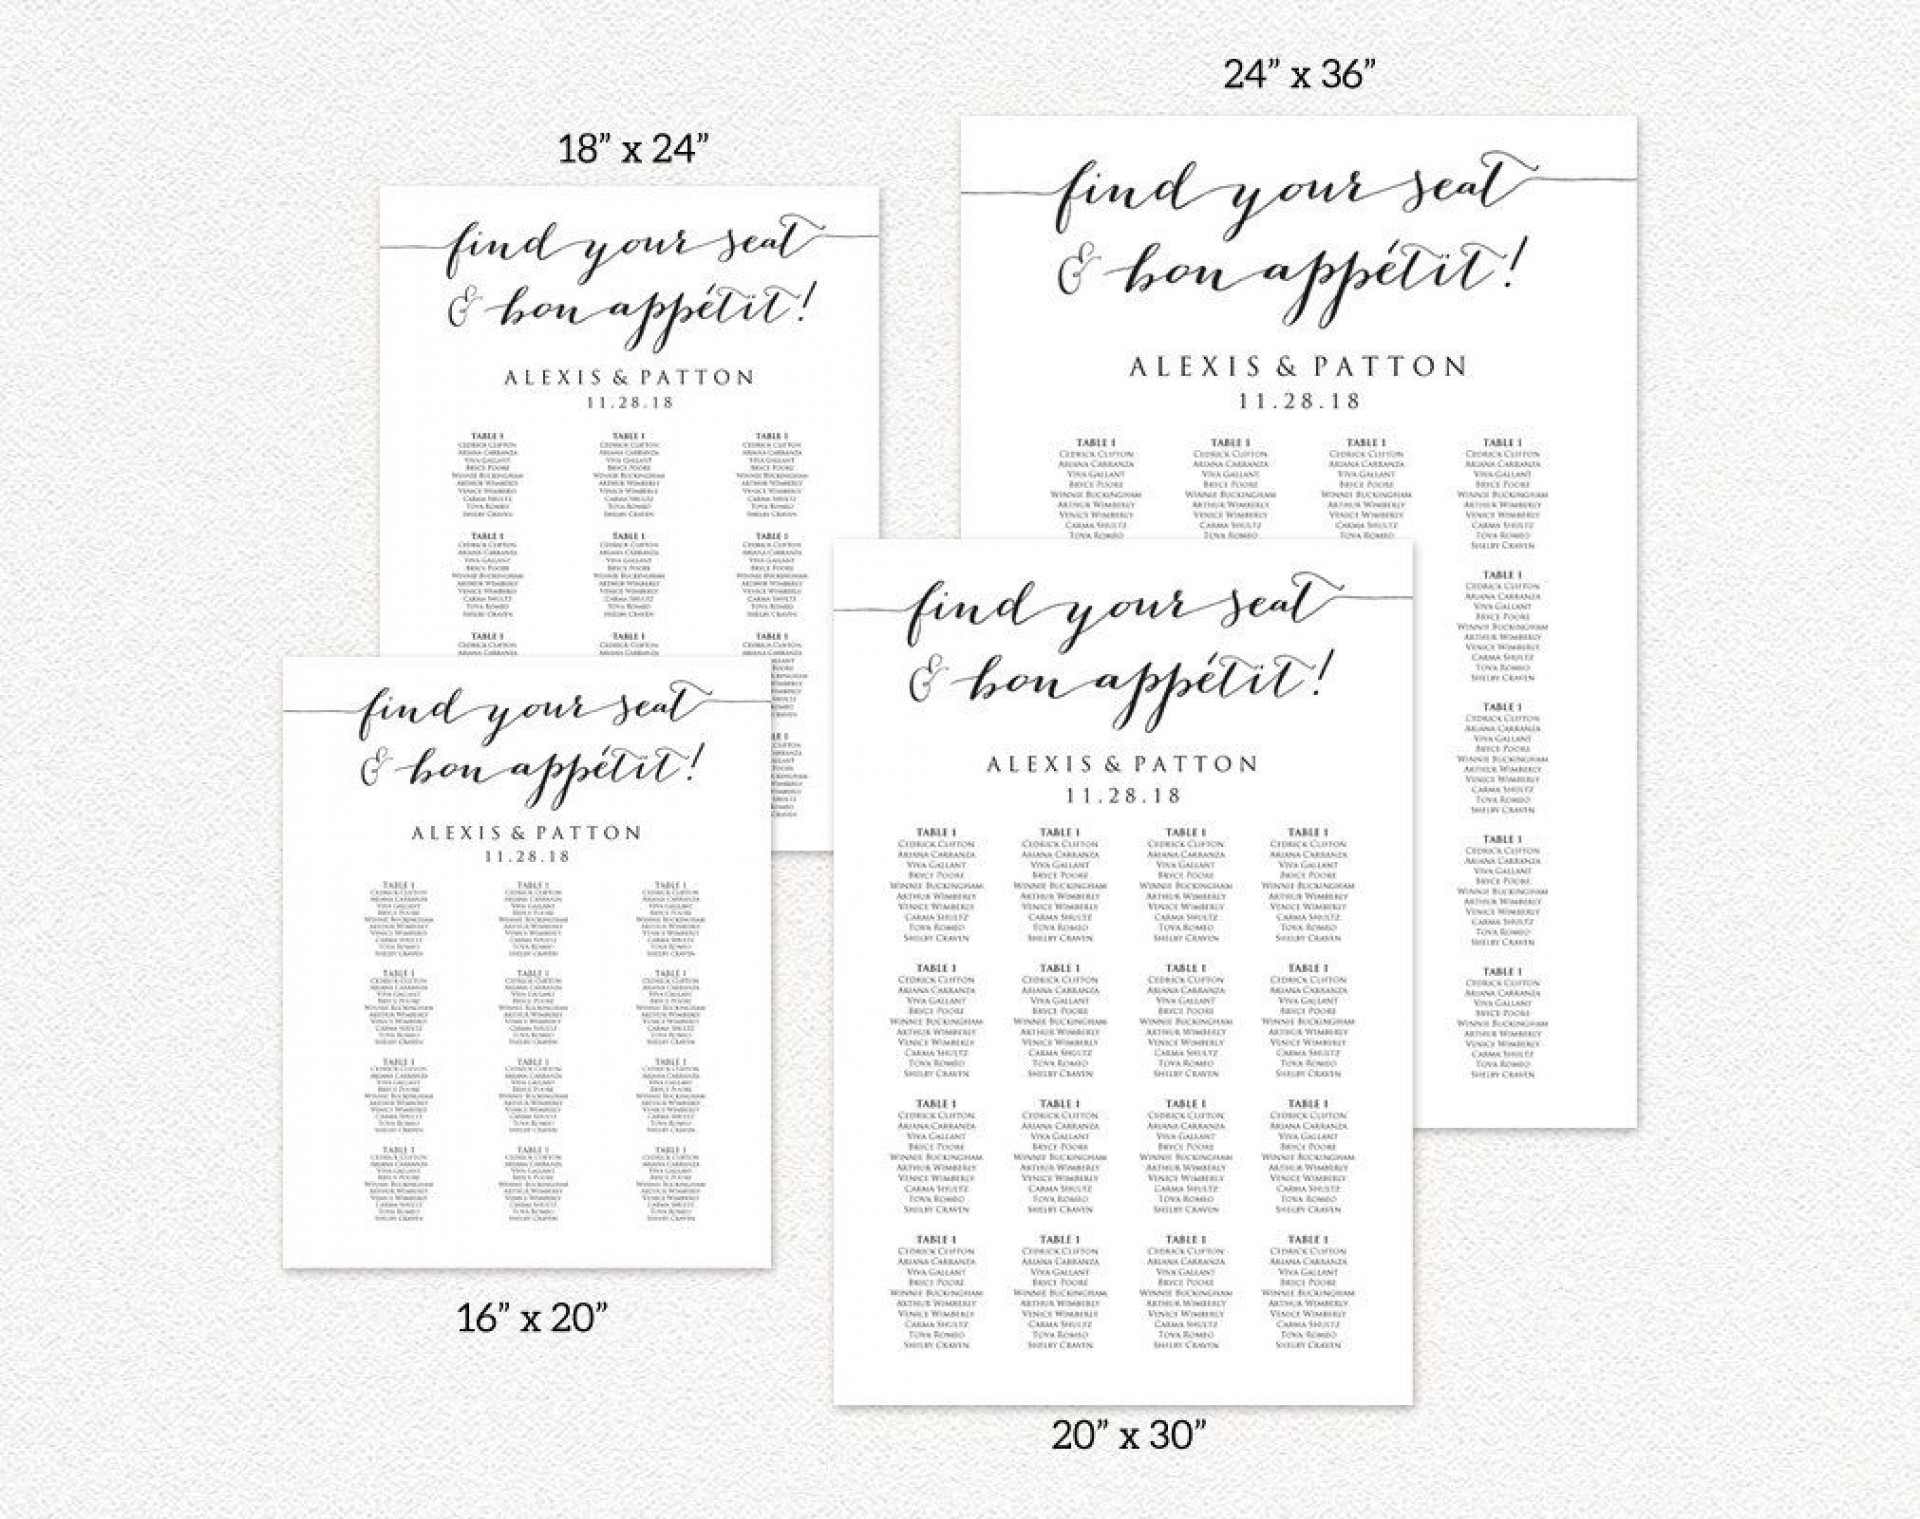 008 Formidable Seating Chart Wedding Template Idea  Alphabetical Word Table Plan1920